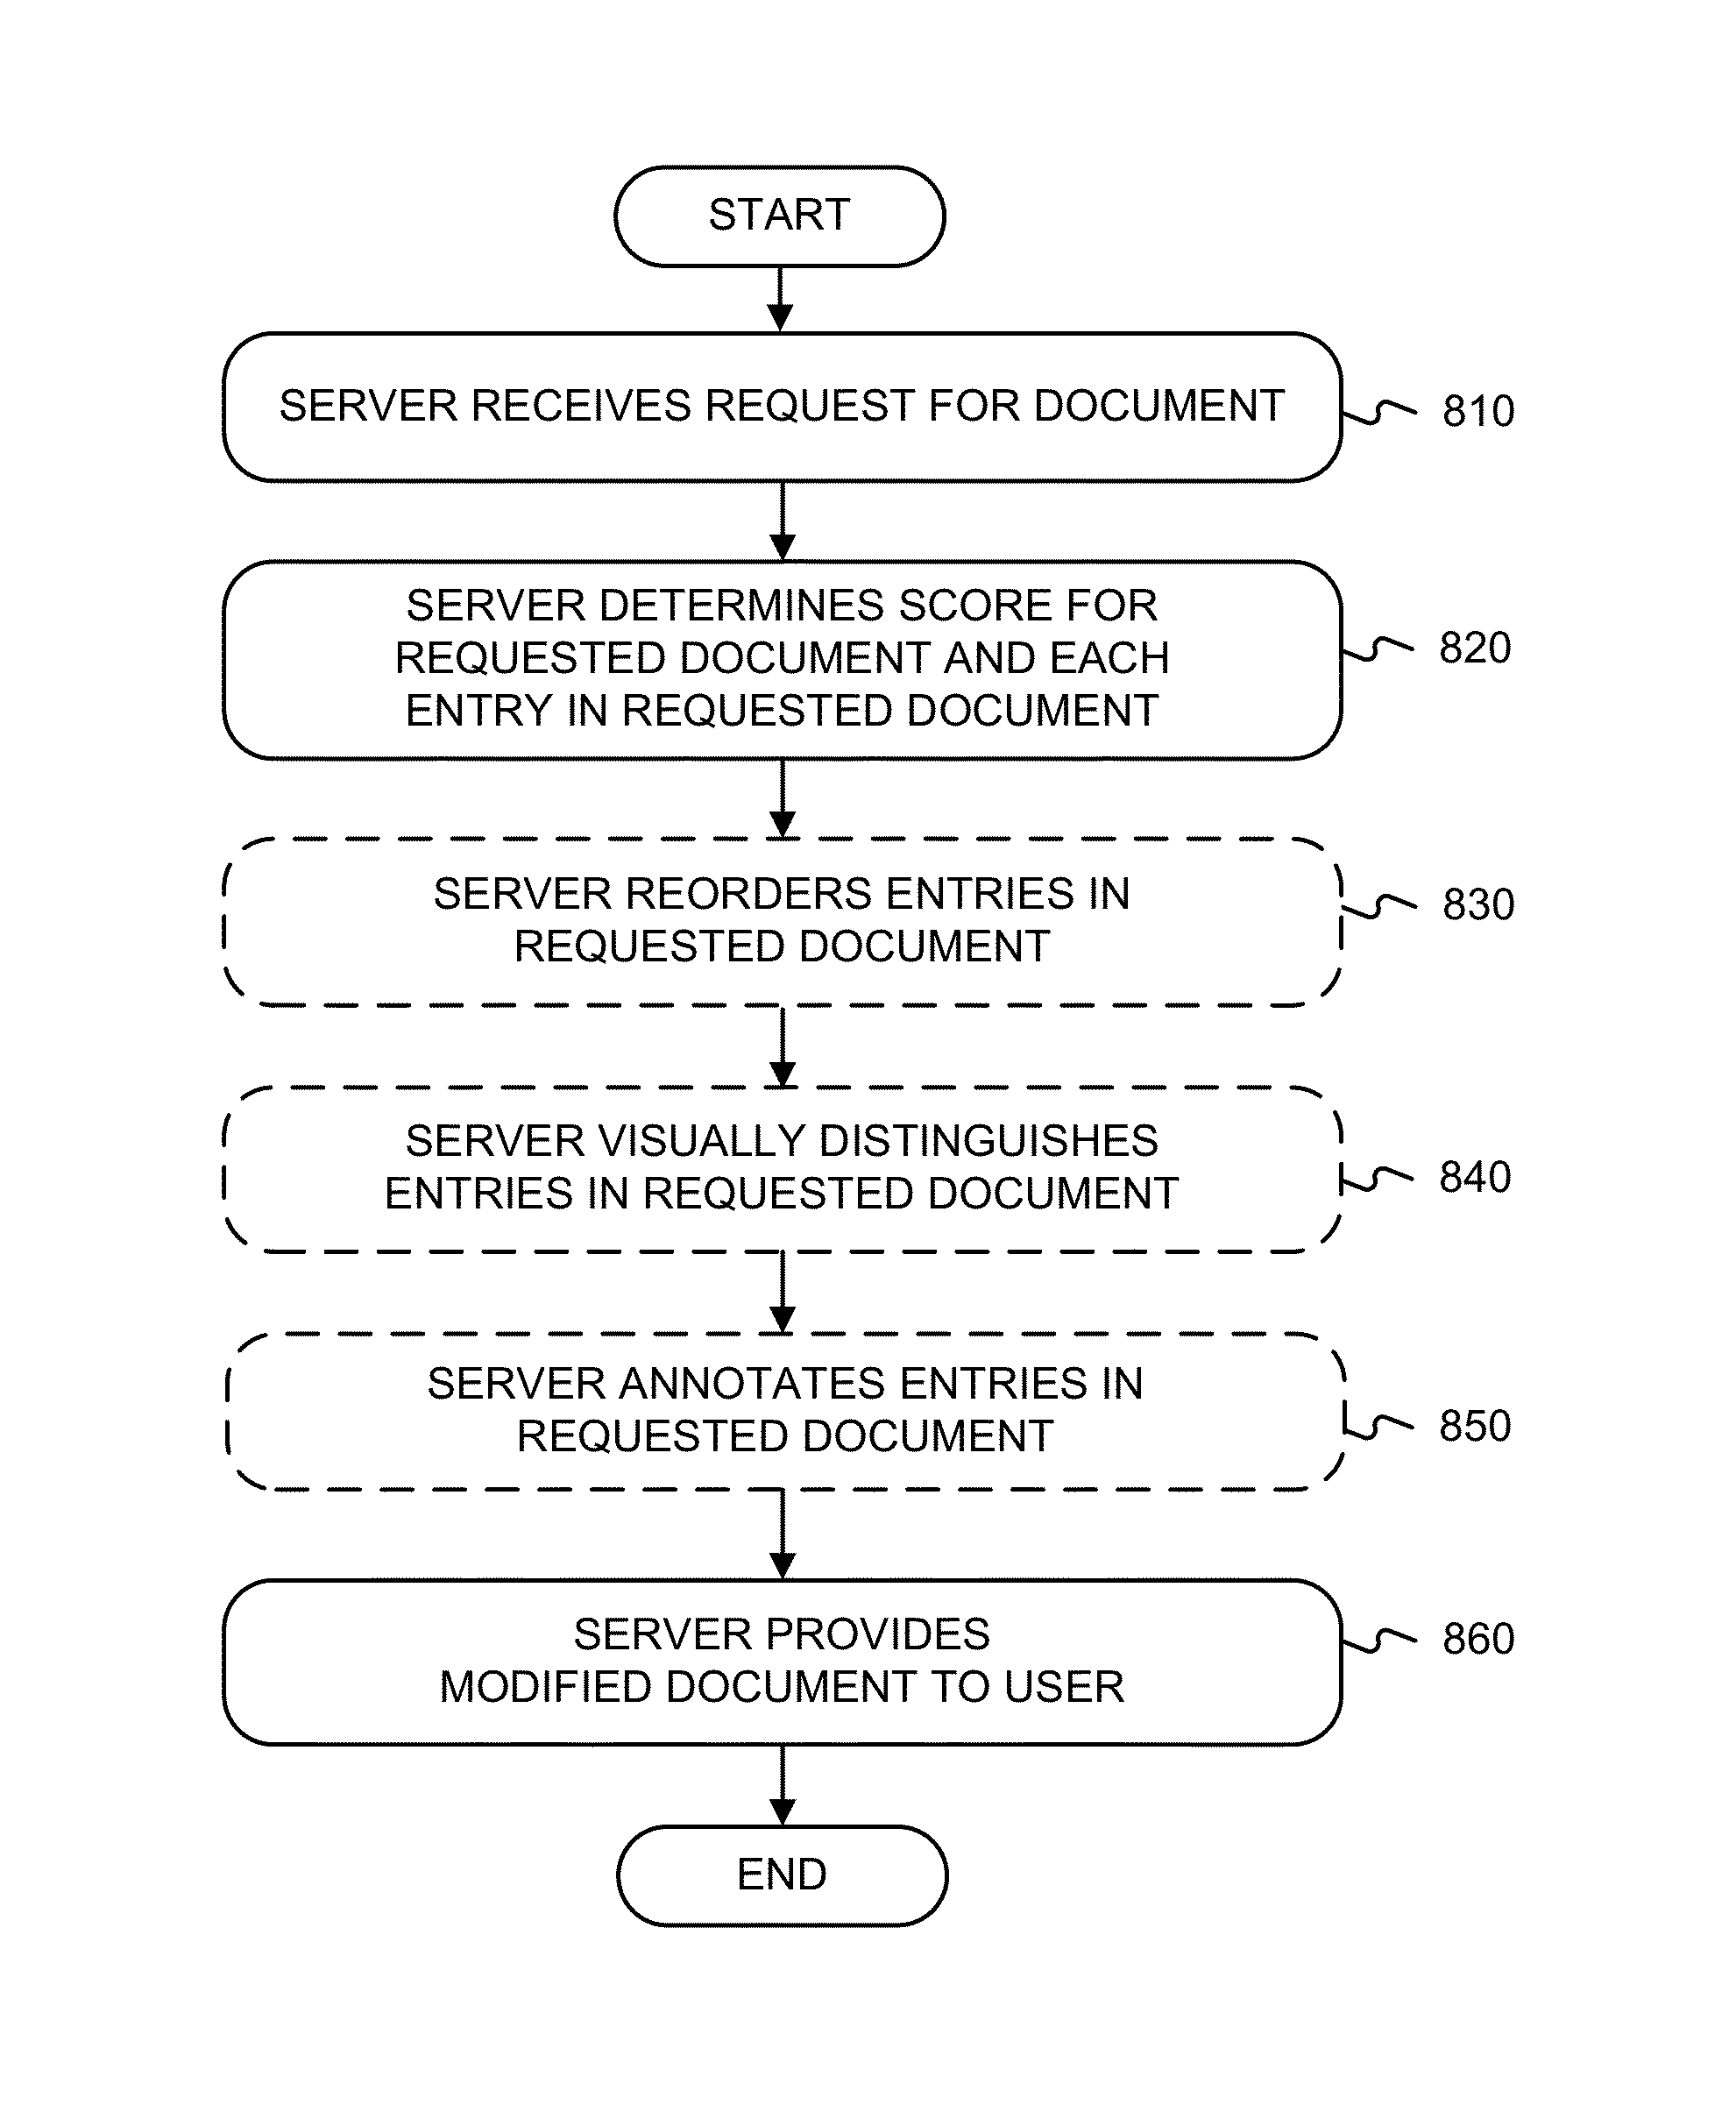 Google  patent by Mark Zuckerberg from 2013 for systems and methods for modifying the order of links presented in a document - US8522128